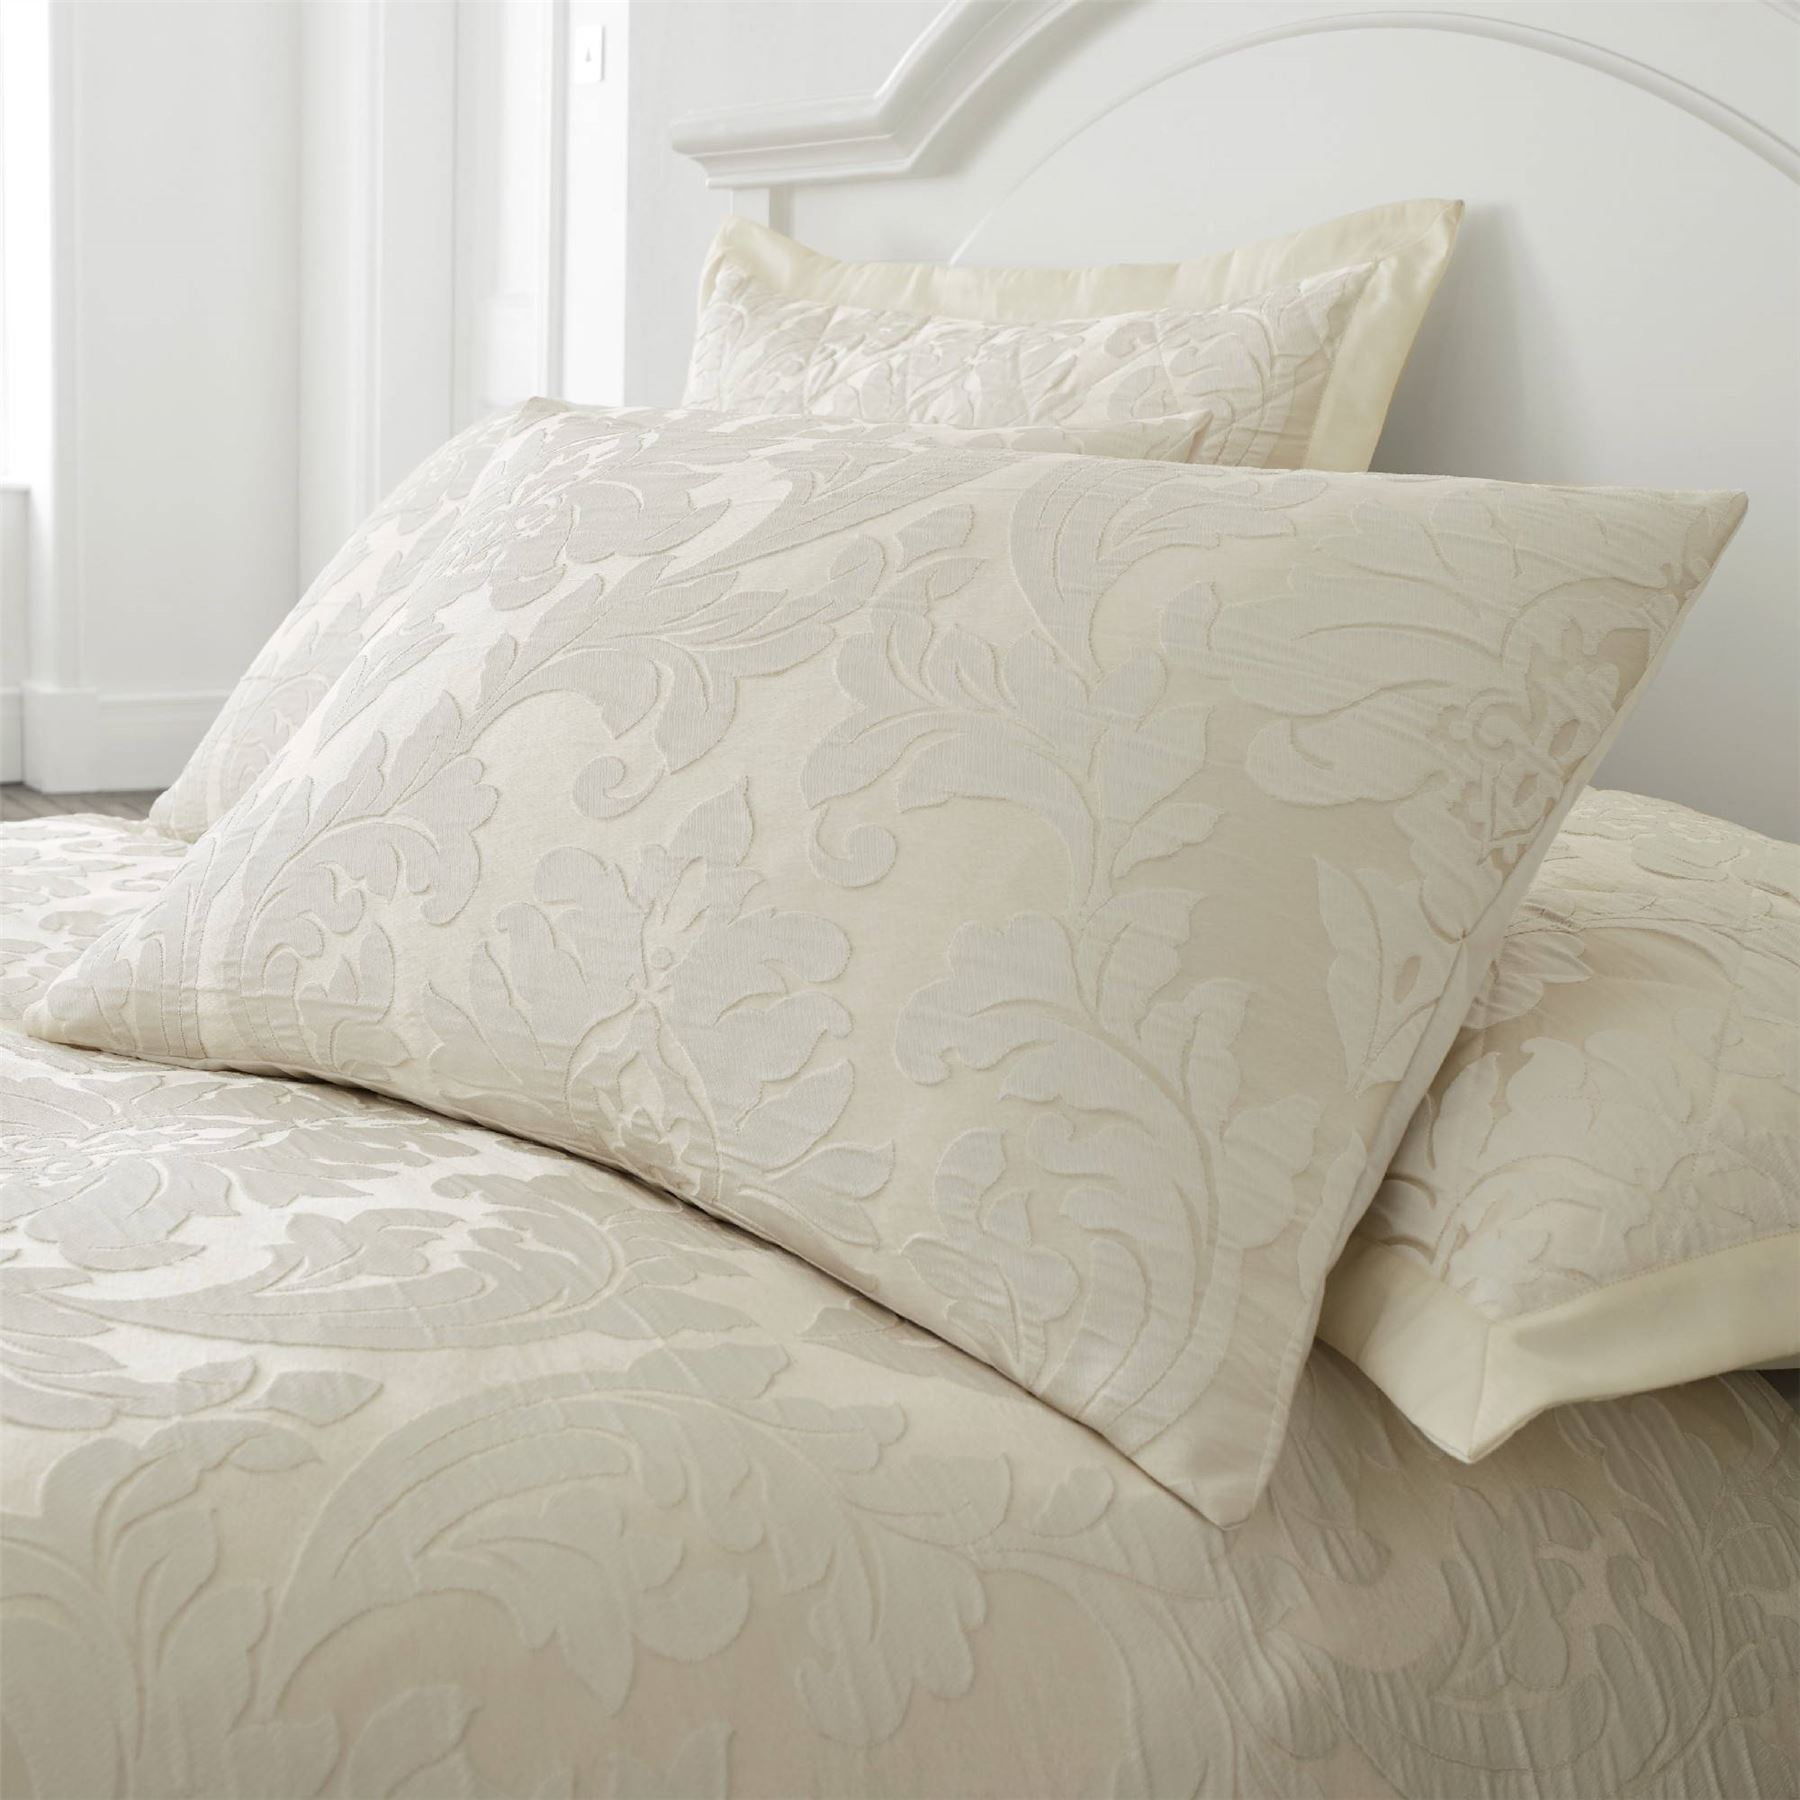 Luxury Jacquard Floral Damask Duvet Cover Bedding Cushions